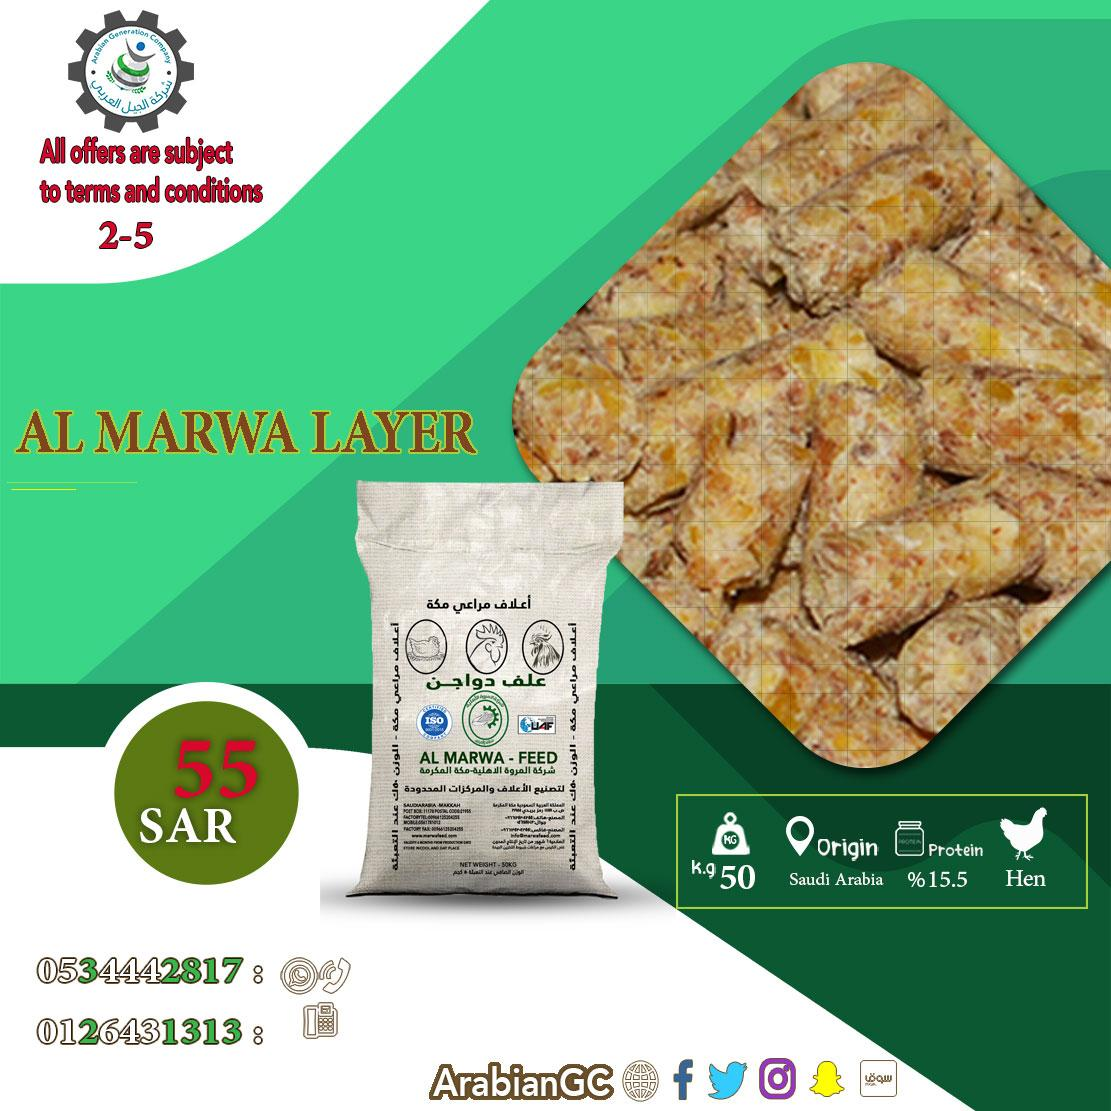 Al-marwa-layer 15.5% d.php?hash=YQBVBSFHM